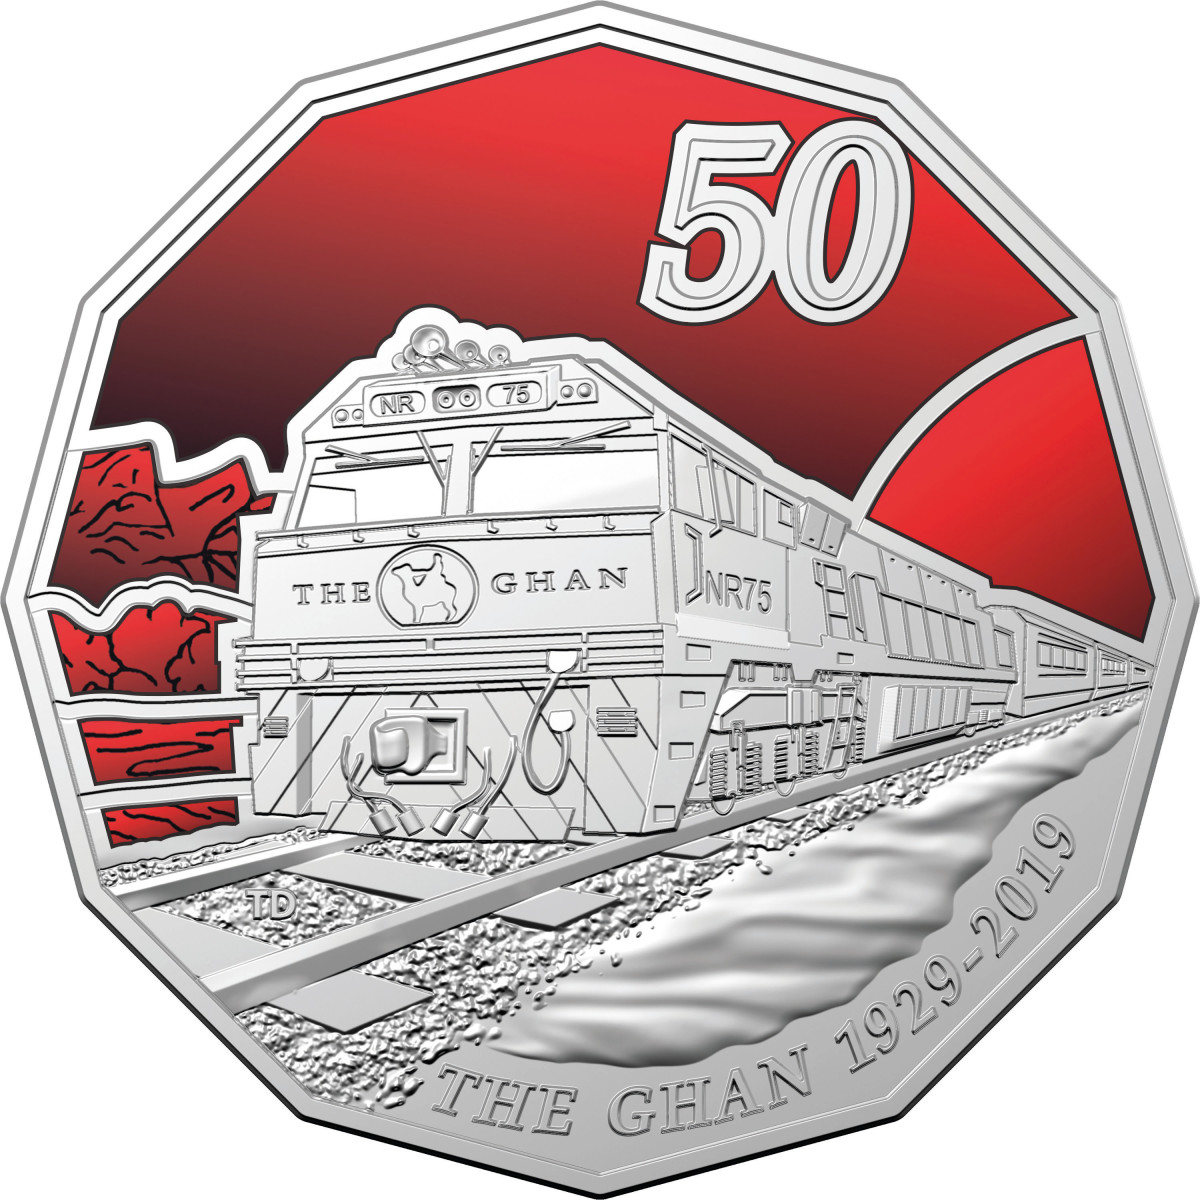 The new coin commemorating the 90th Anniversary of the Ghan. (Image courtesy of the Royal Australian Mint)